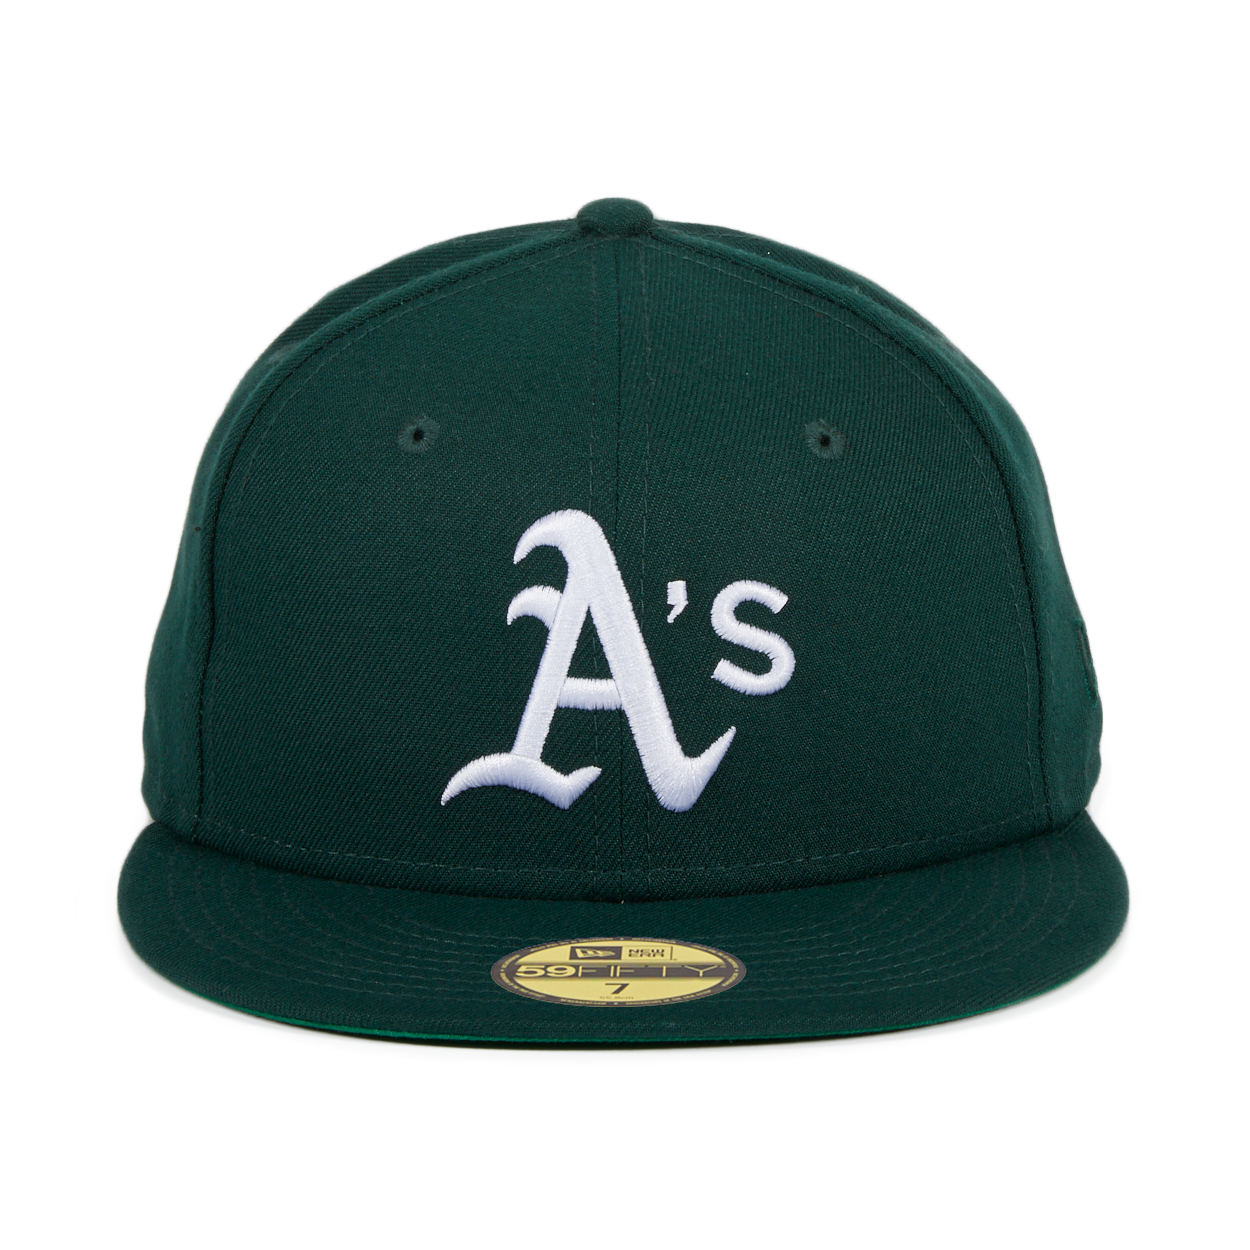 7d5cd6c3d52 Exclusive New Era 59Fifty Oakland Athletics 1993 Hat - Green